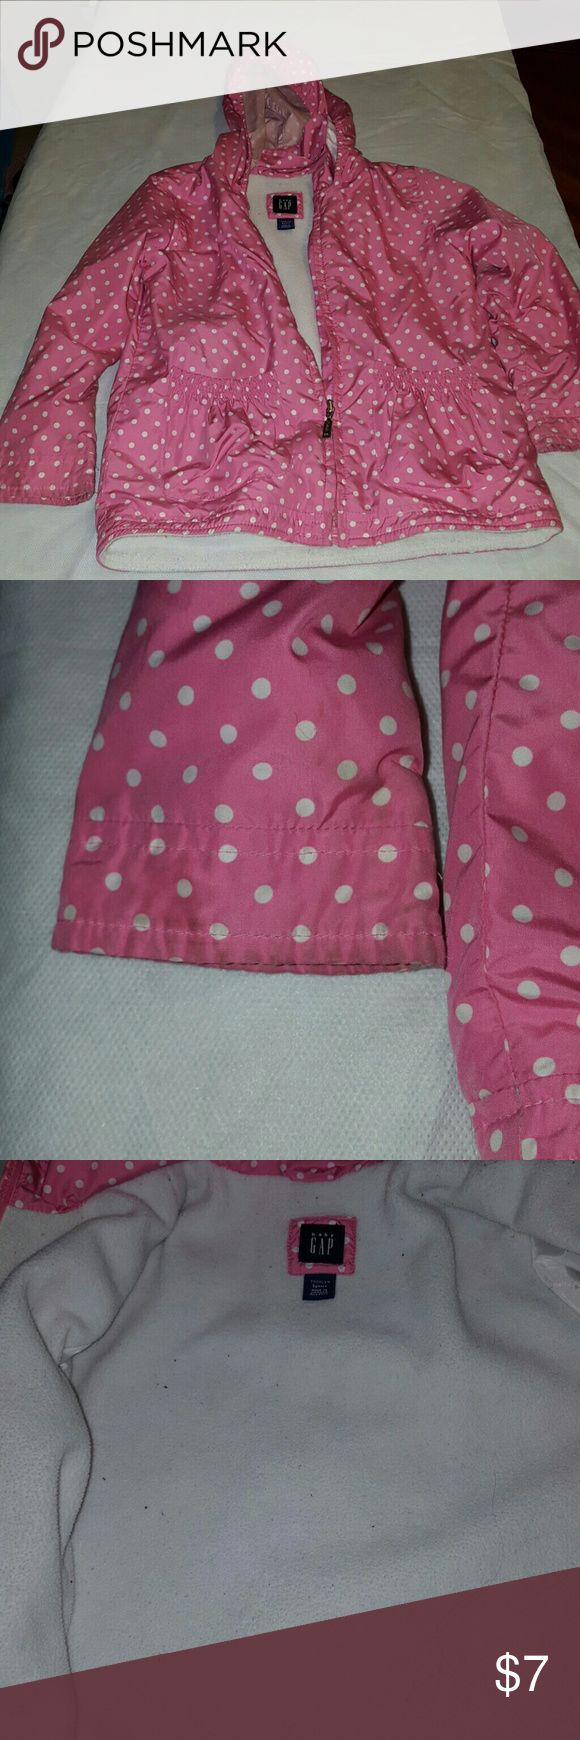 Girls lightweight Baby Gap Hooded Jacket Girls lightweight Baby Gap Jacket, pink with white polka dots.  There is some wear on the cuffs,, can easily be removed with a good scrub and stain remover. GAP Jackets & Coats